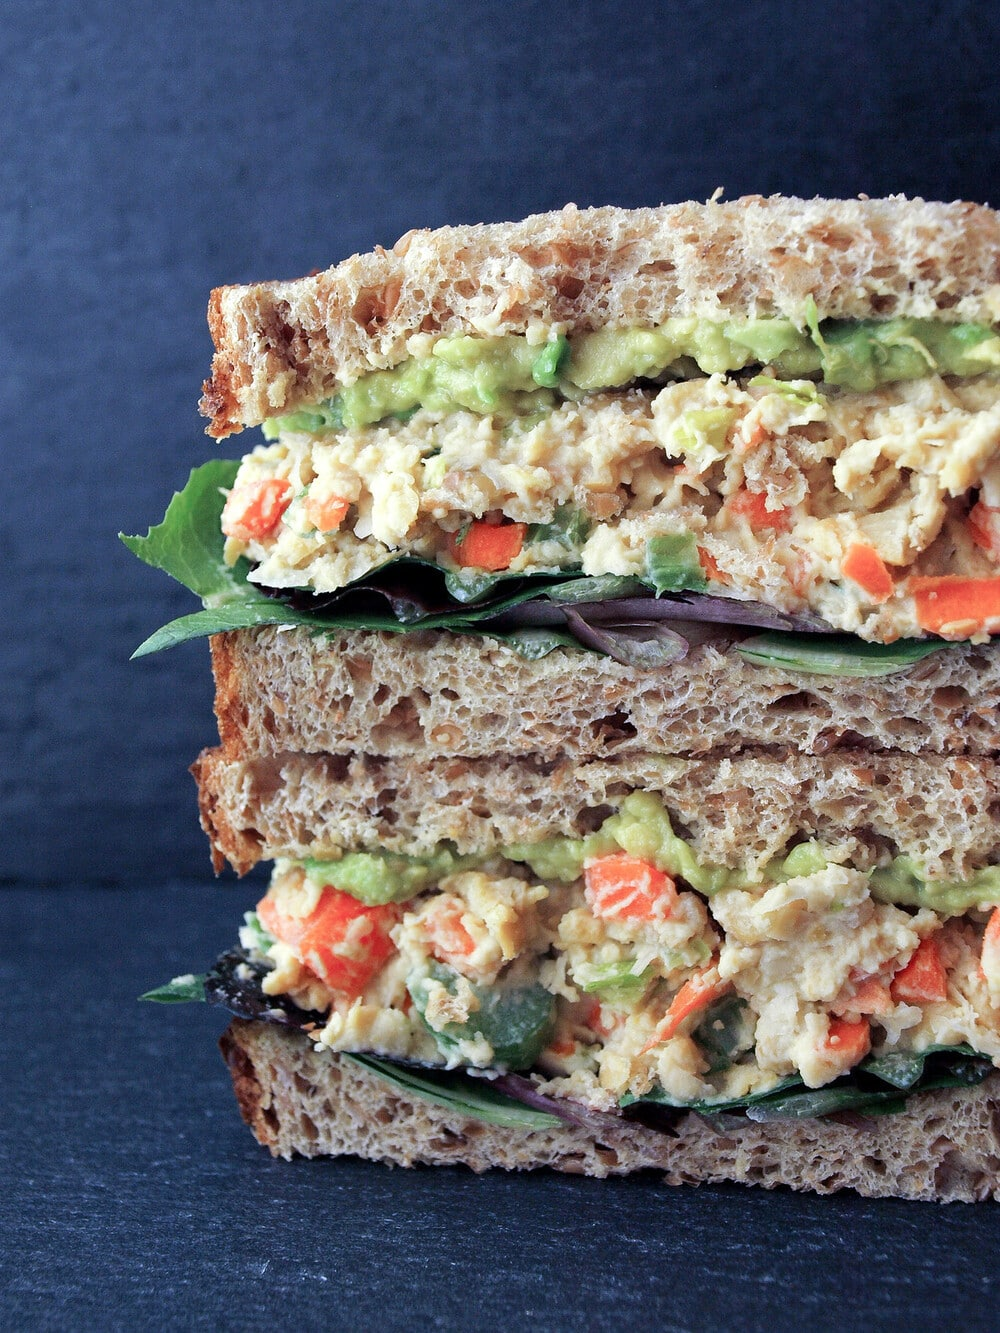 up close, head on view of a vegan mashed chickpea salad sandwich sliced in half and stacked.